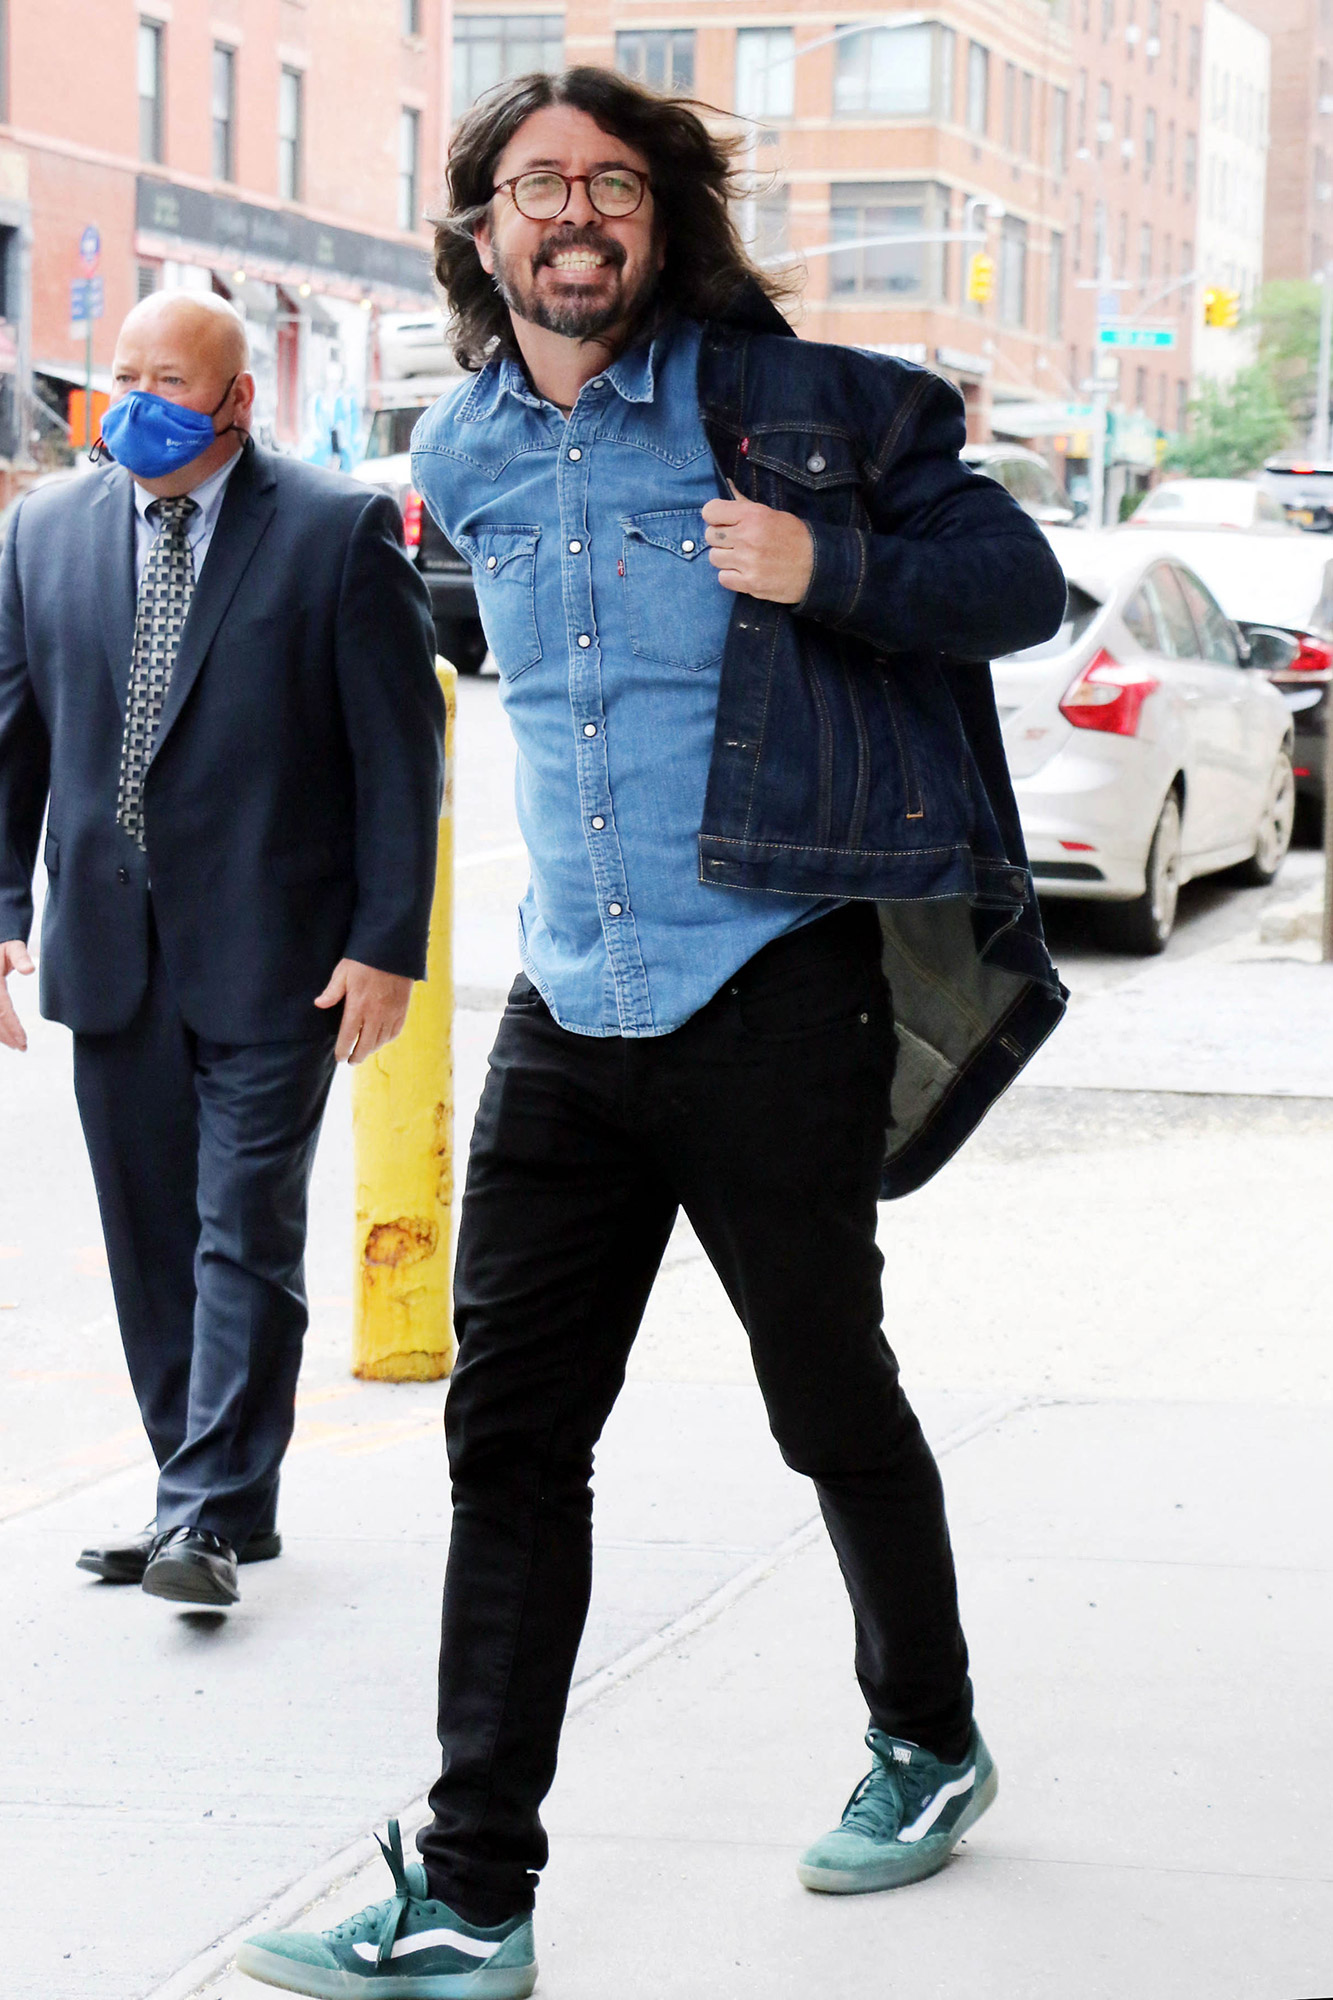 Dave Grohl seen at CBS studios promoting the docuseries 'From Cradle to Stage' at 'CBS This Morning' Dave Grohl out and about, New York, USA - 25 May 2021